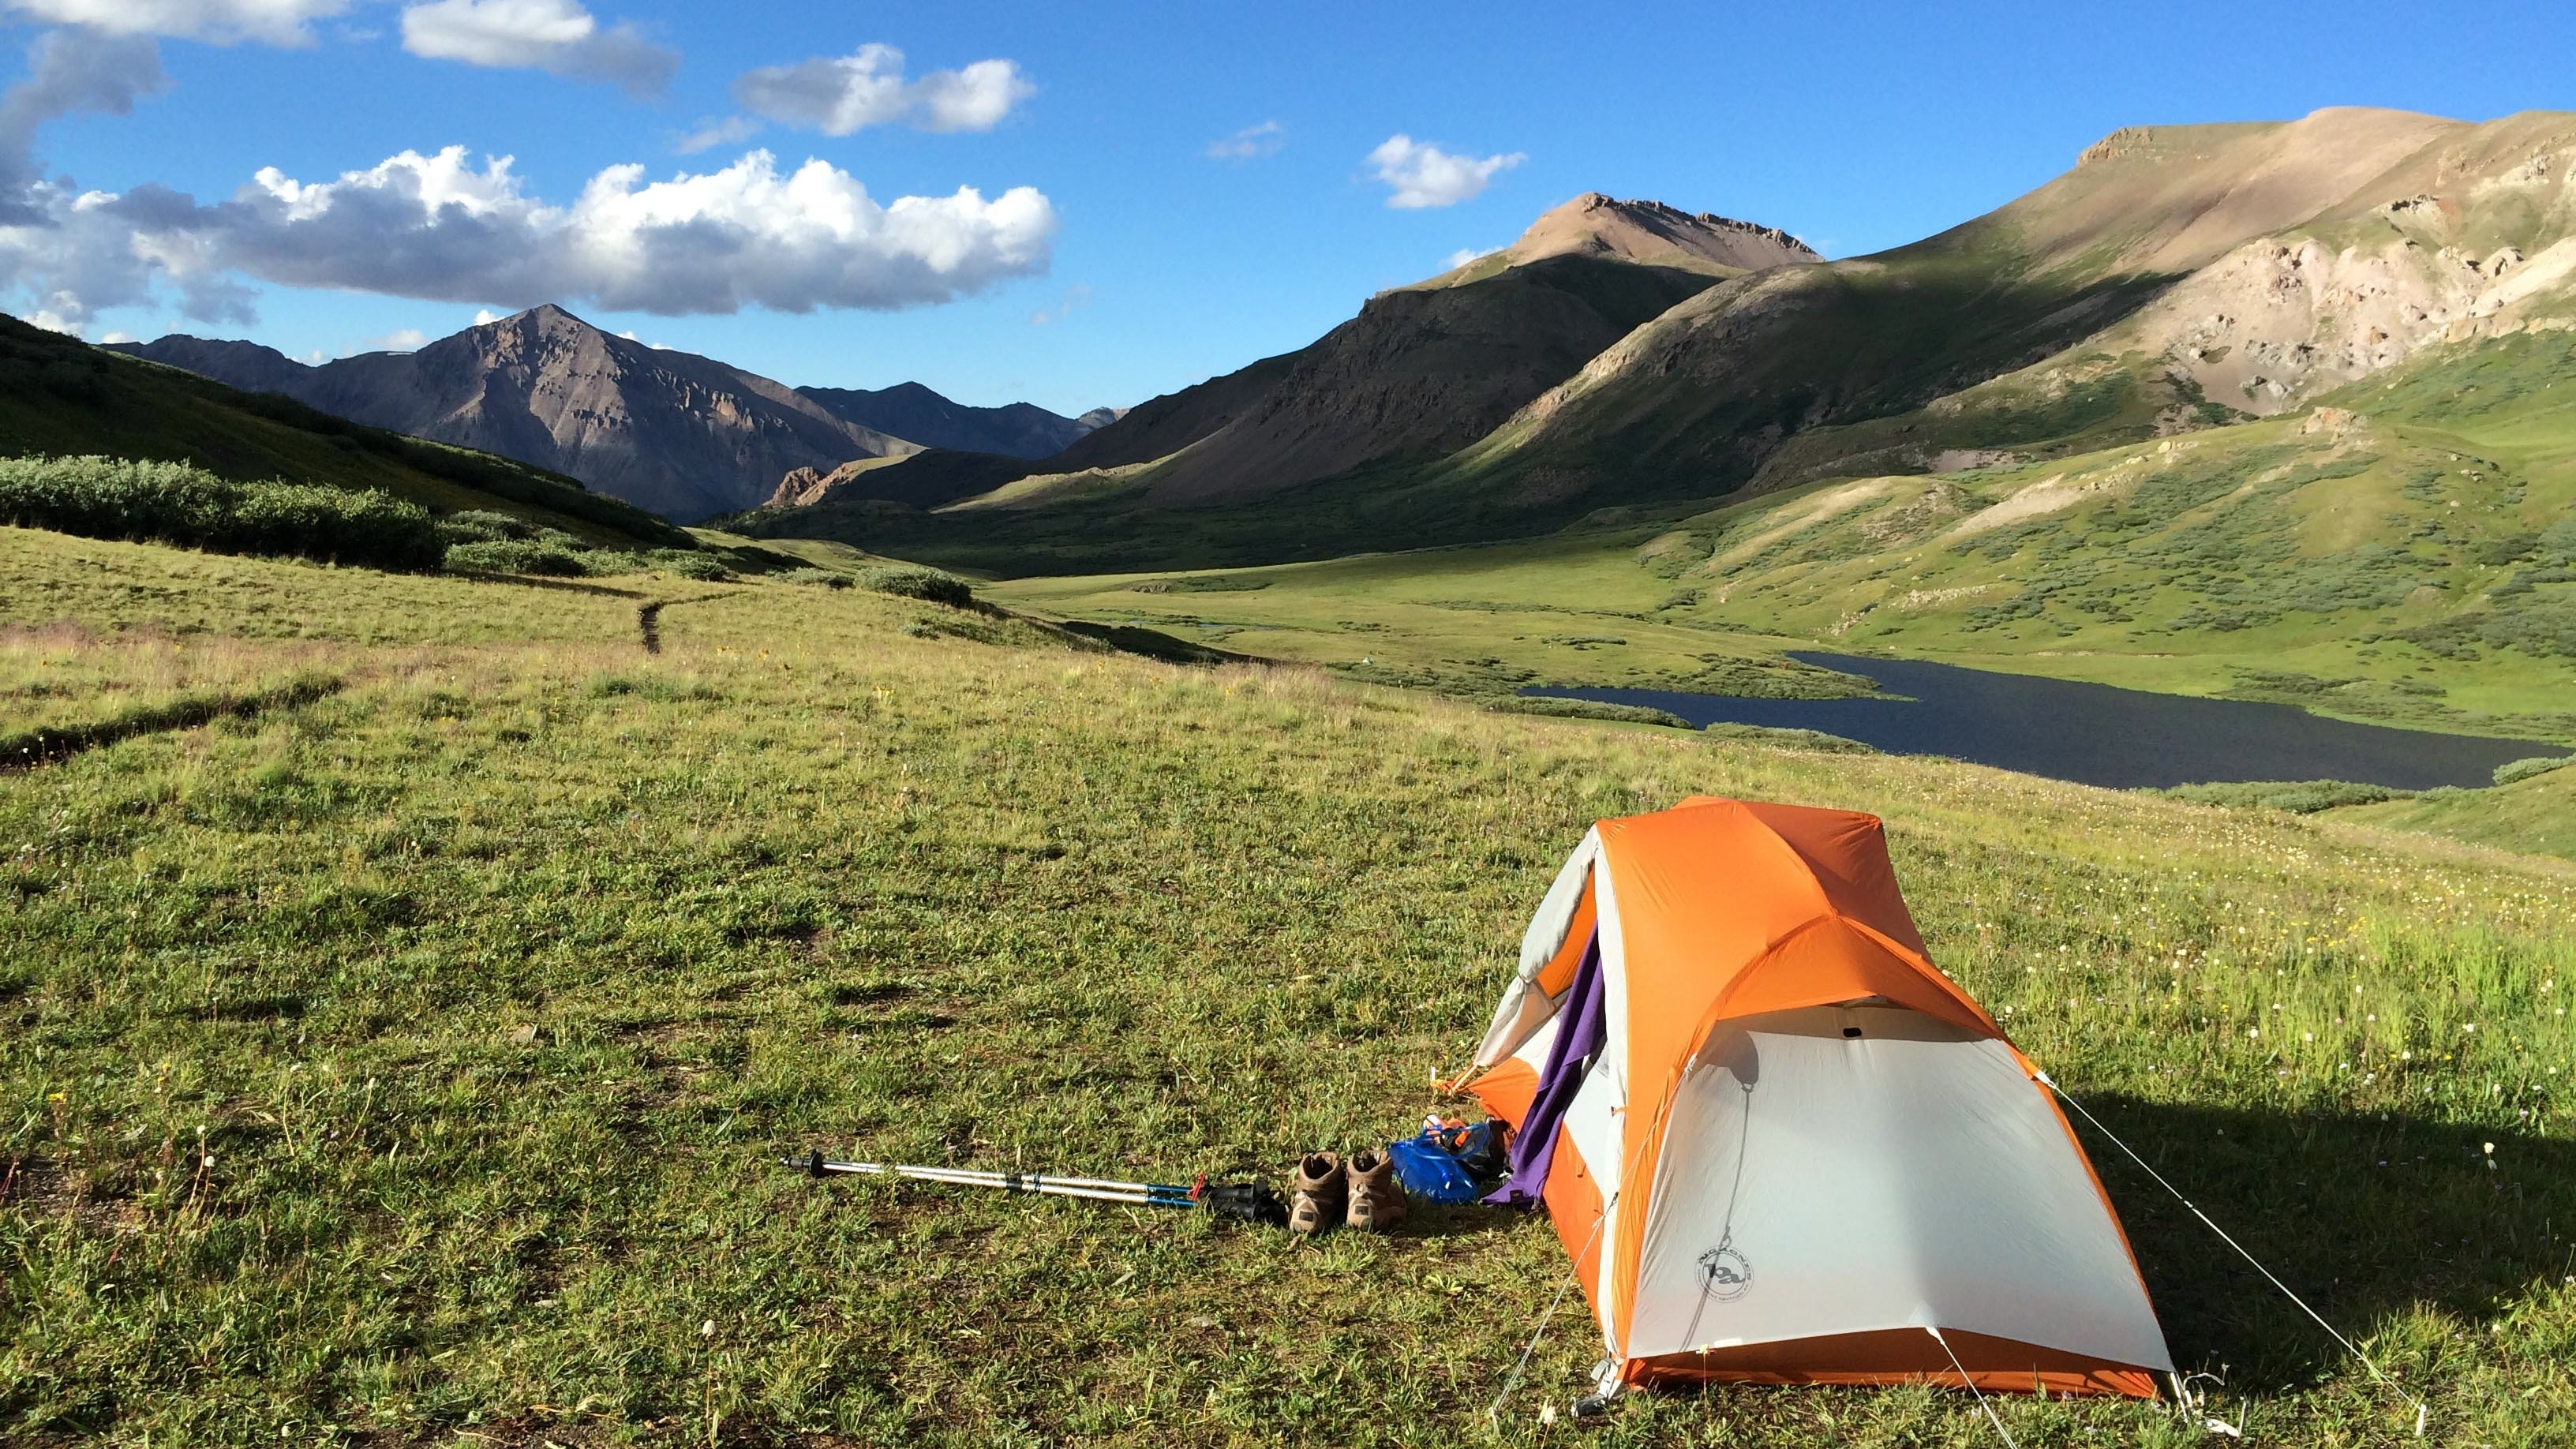 Camping in the colorado trail